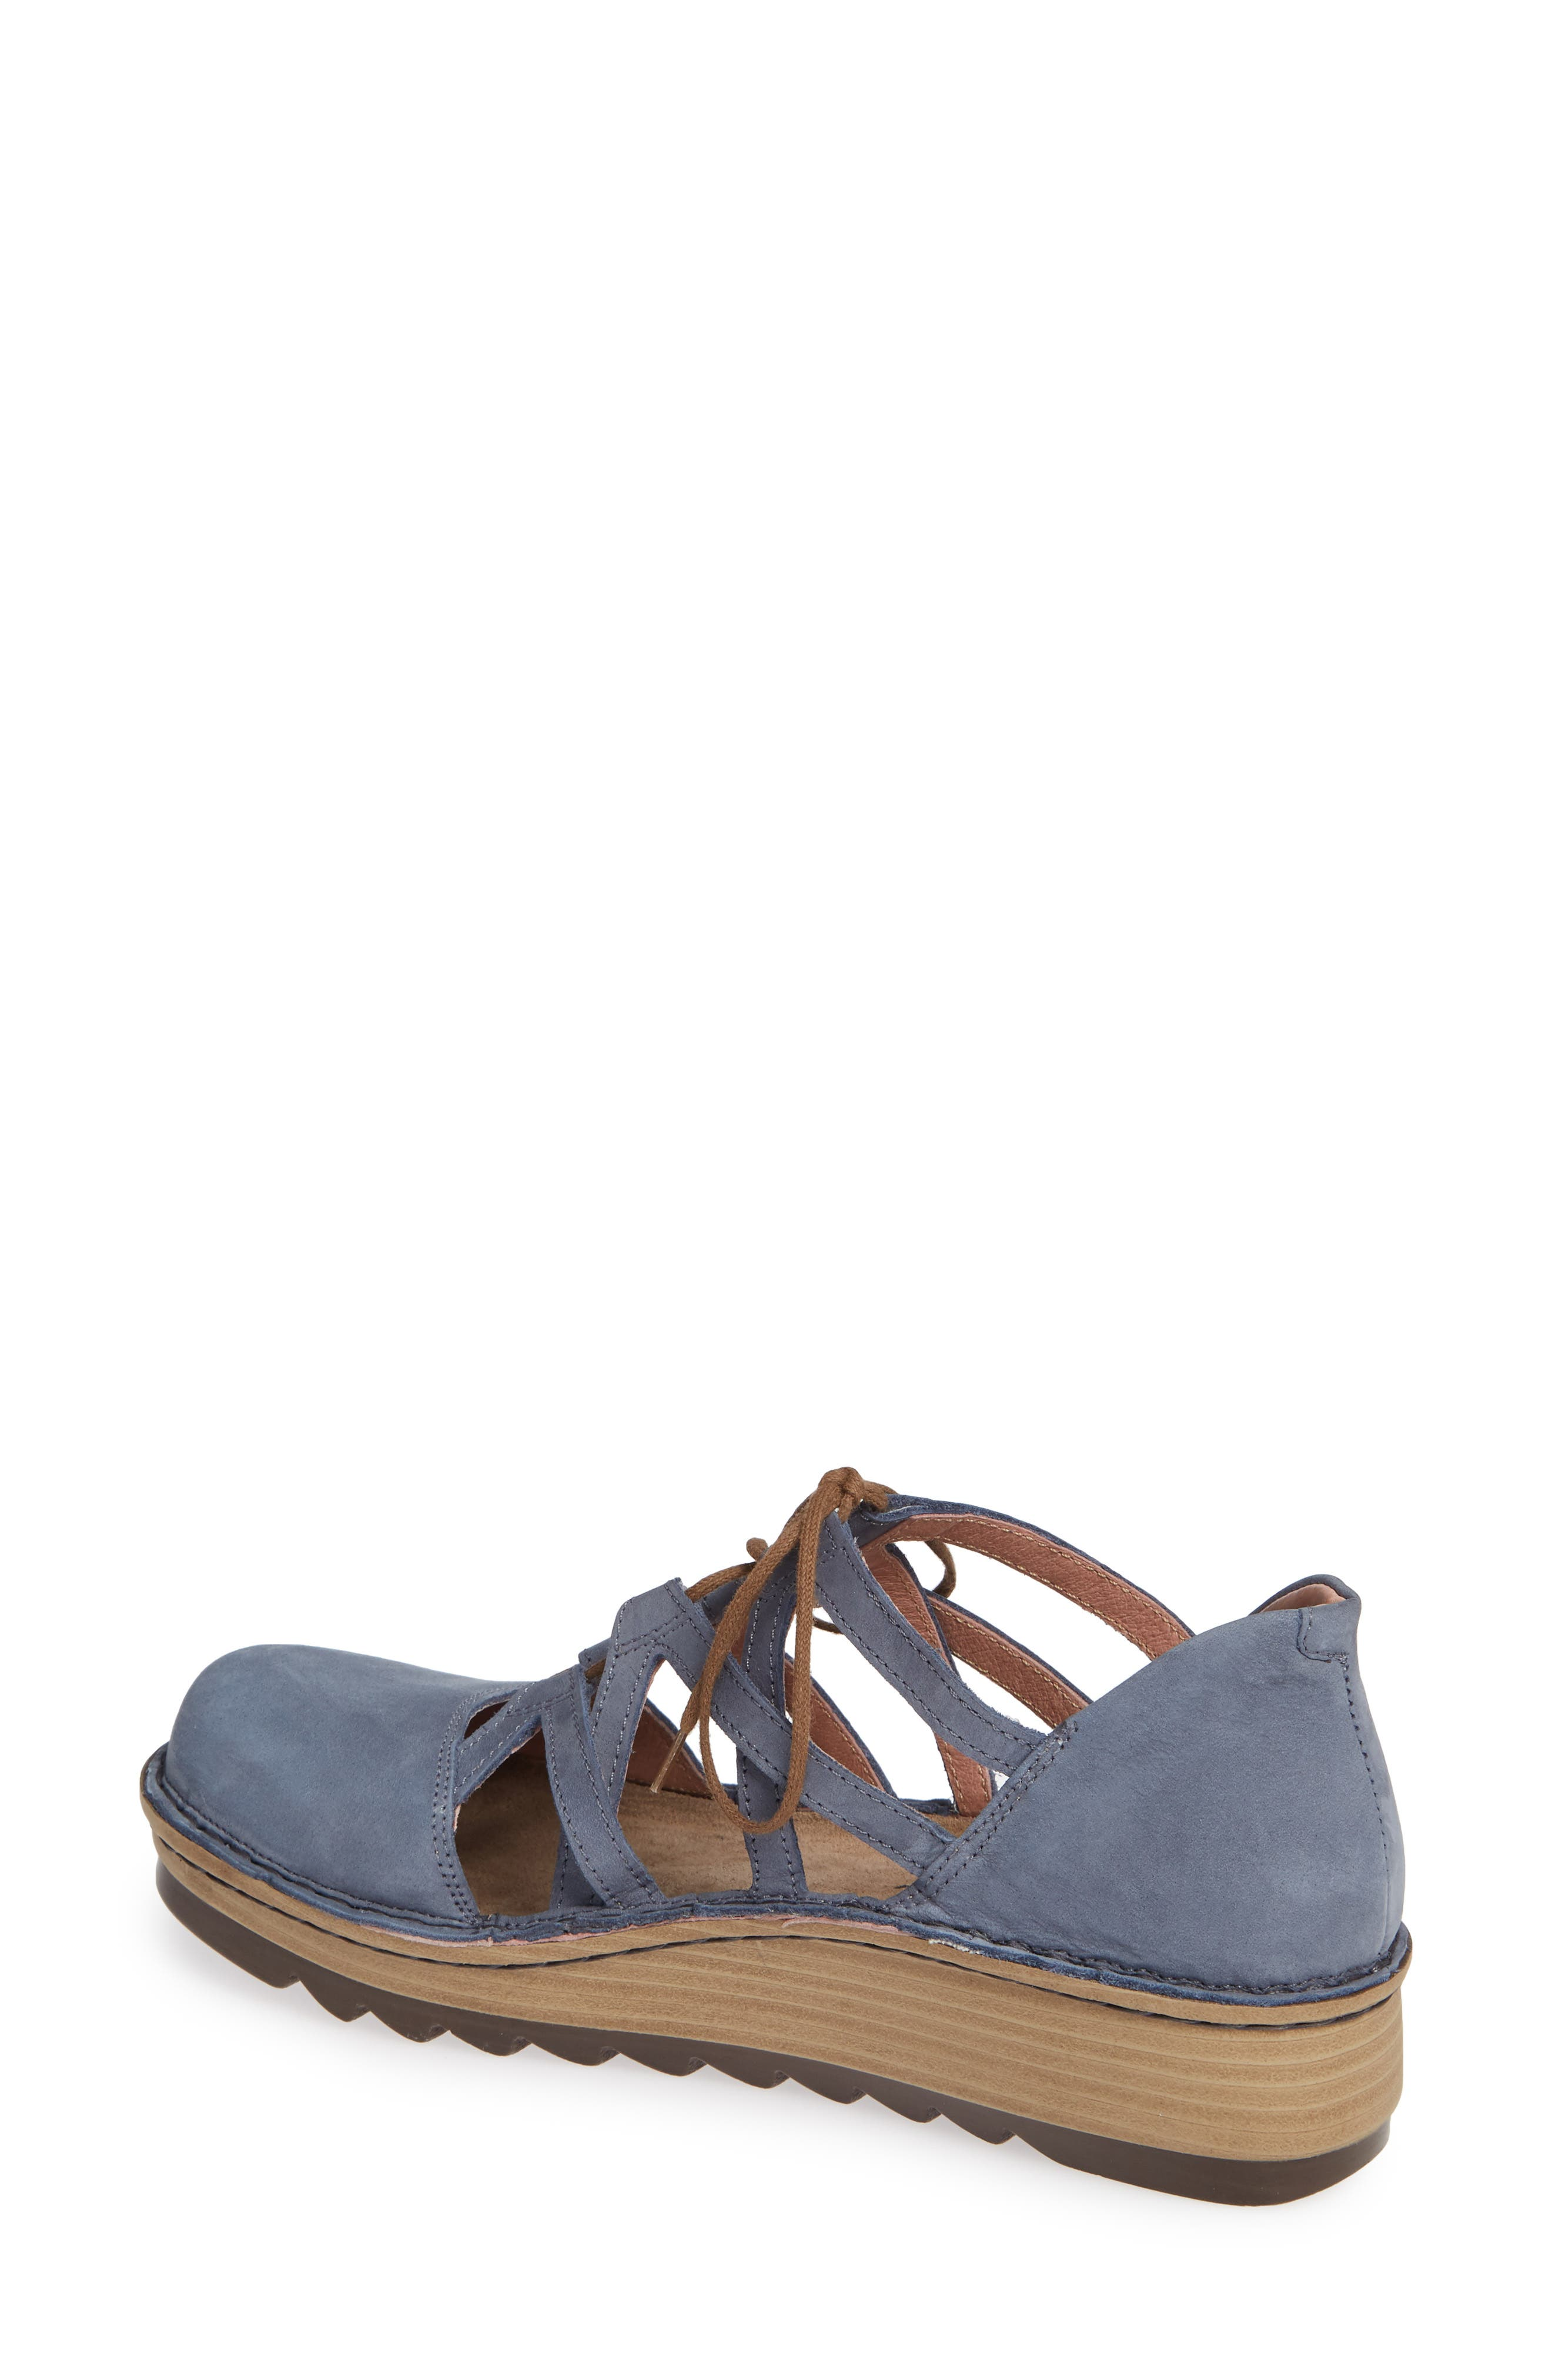 NAOT,                             Calathea Ghillie Laced Wedge,                             Alternate thumbnail 2, color,                             FEATHERY BLUE NUBUCK